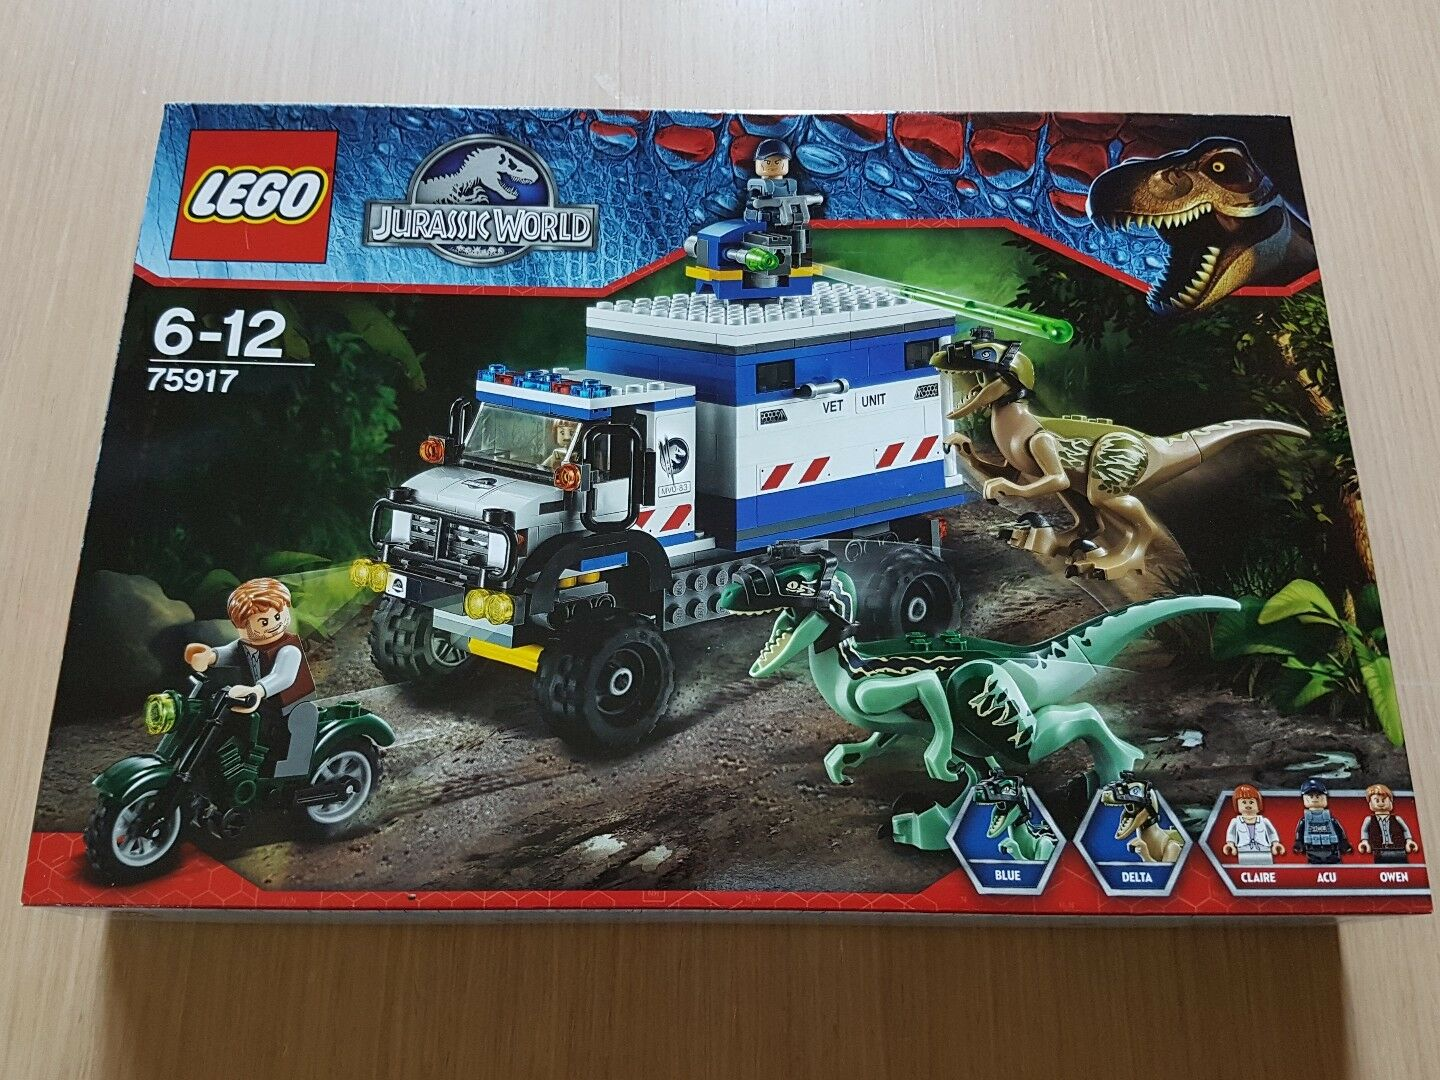 Lego 75917 Jurassic world R. RAMPAGE . New